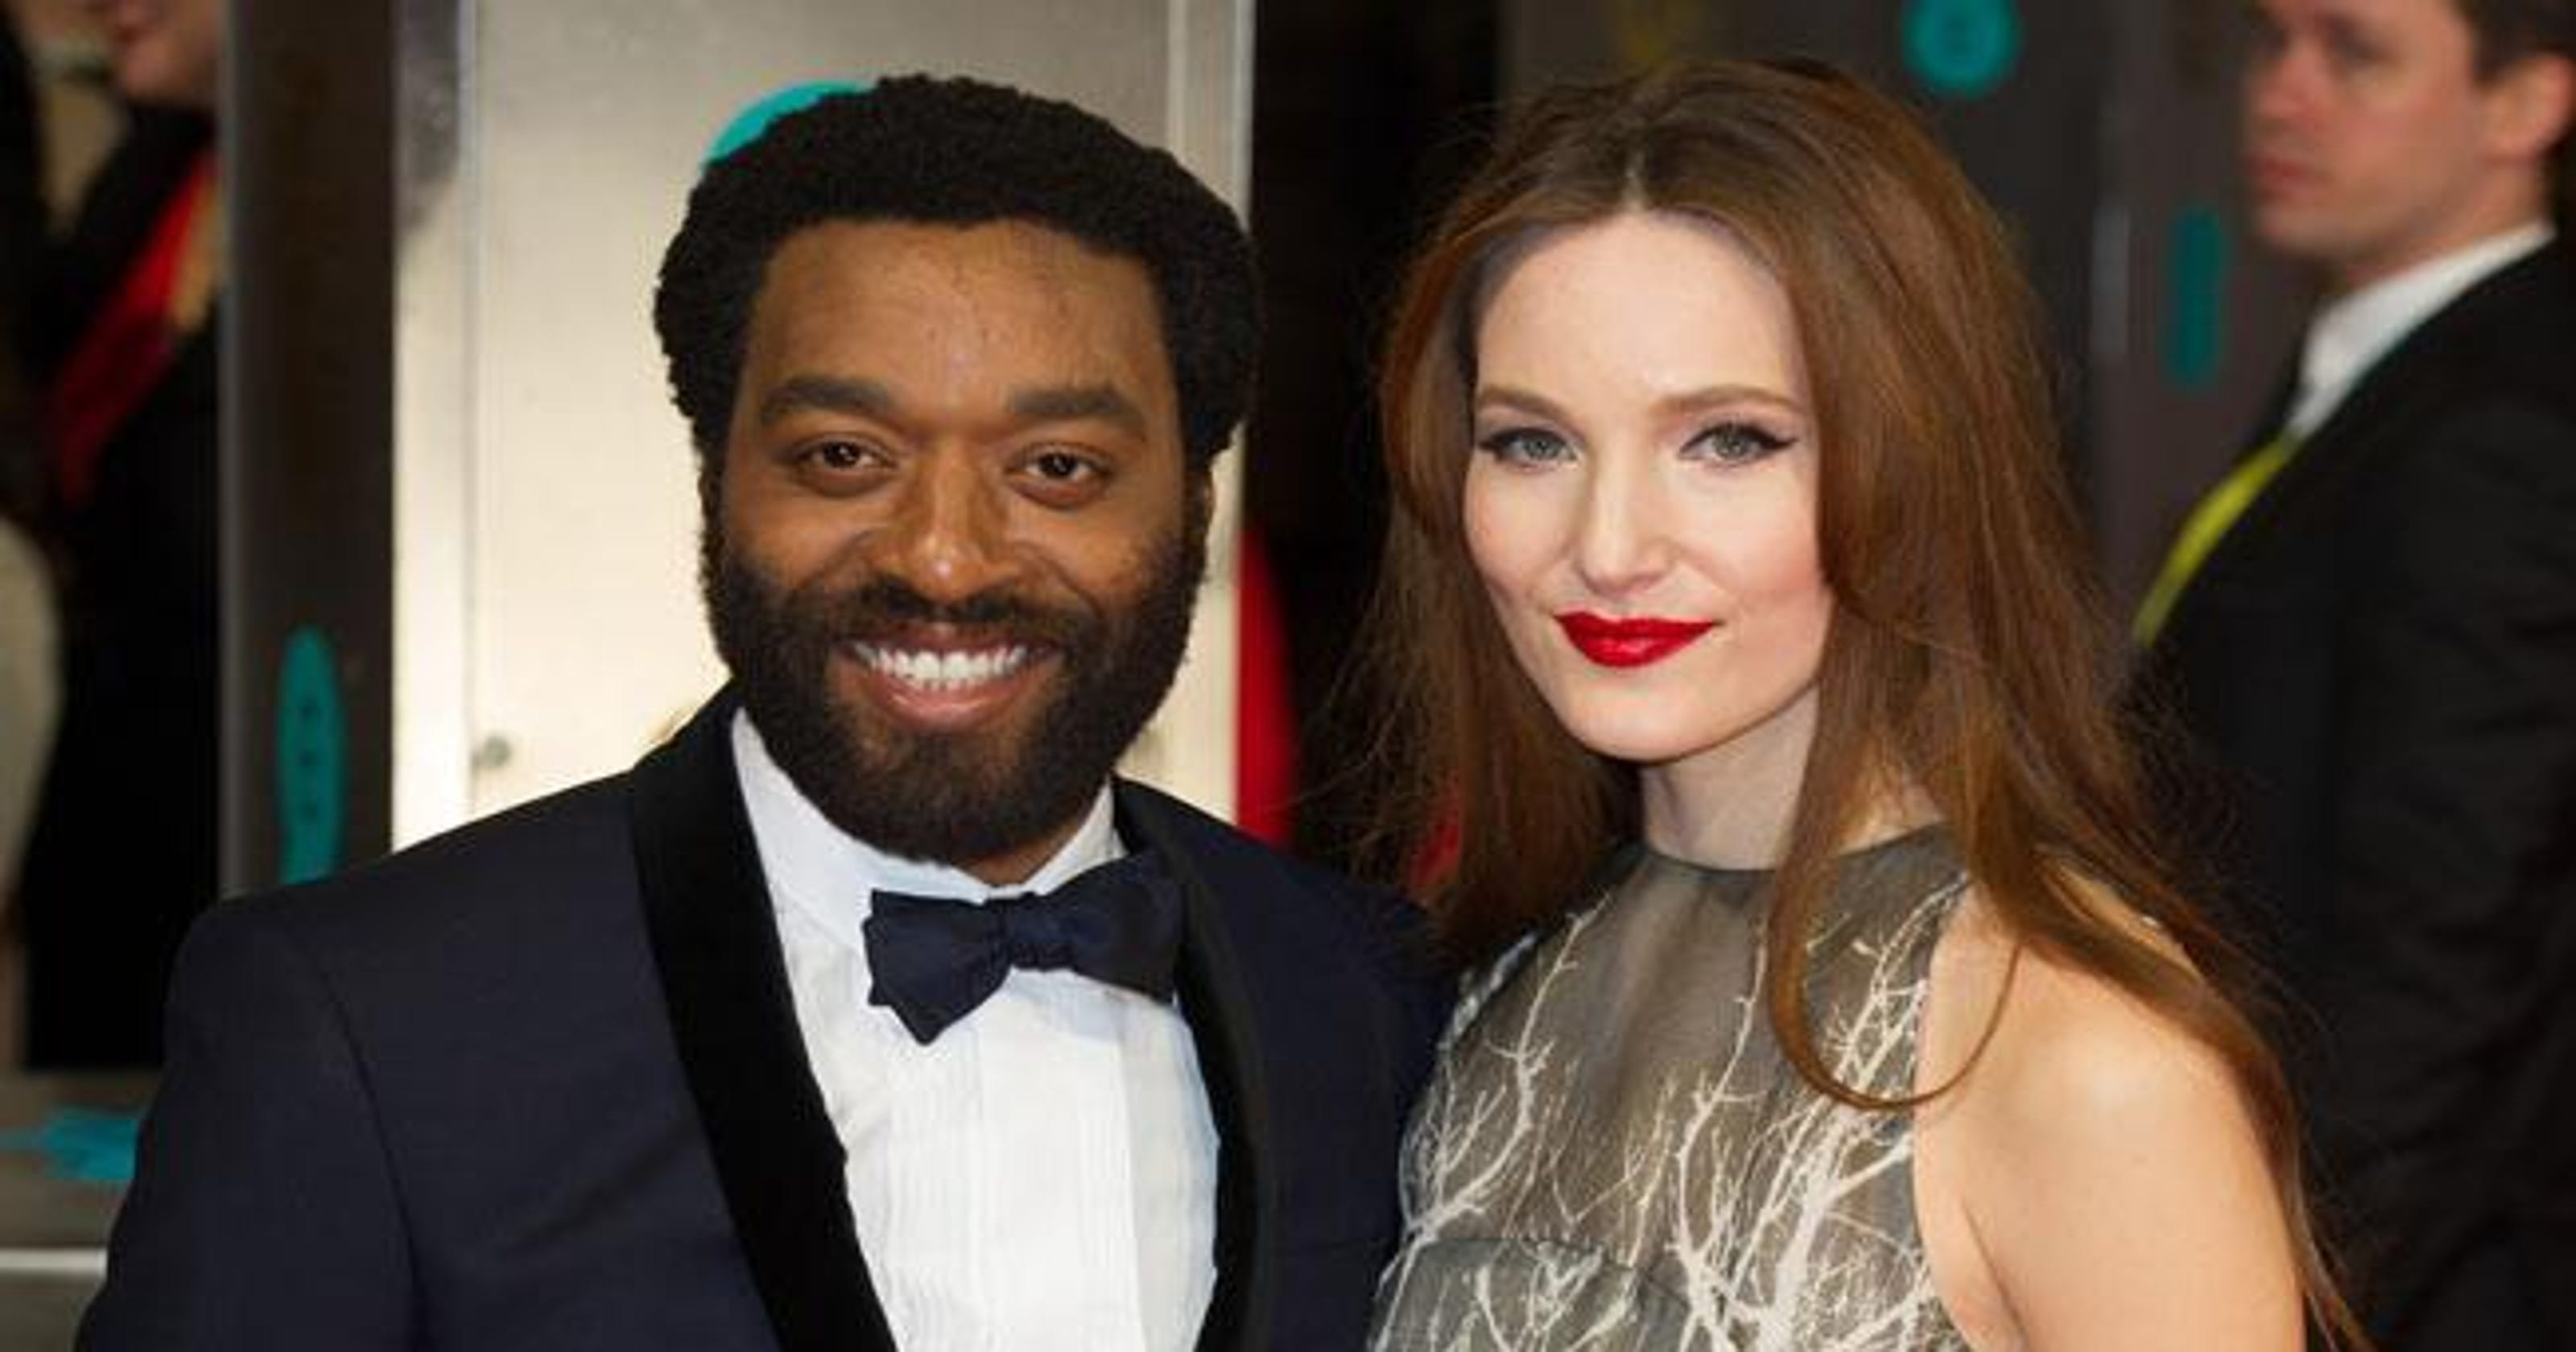 Couple Love - Chiwetel Ejiofor And Girlfriend Sari Mercer |Chiwetel Ejiofor Married